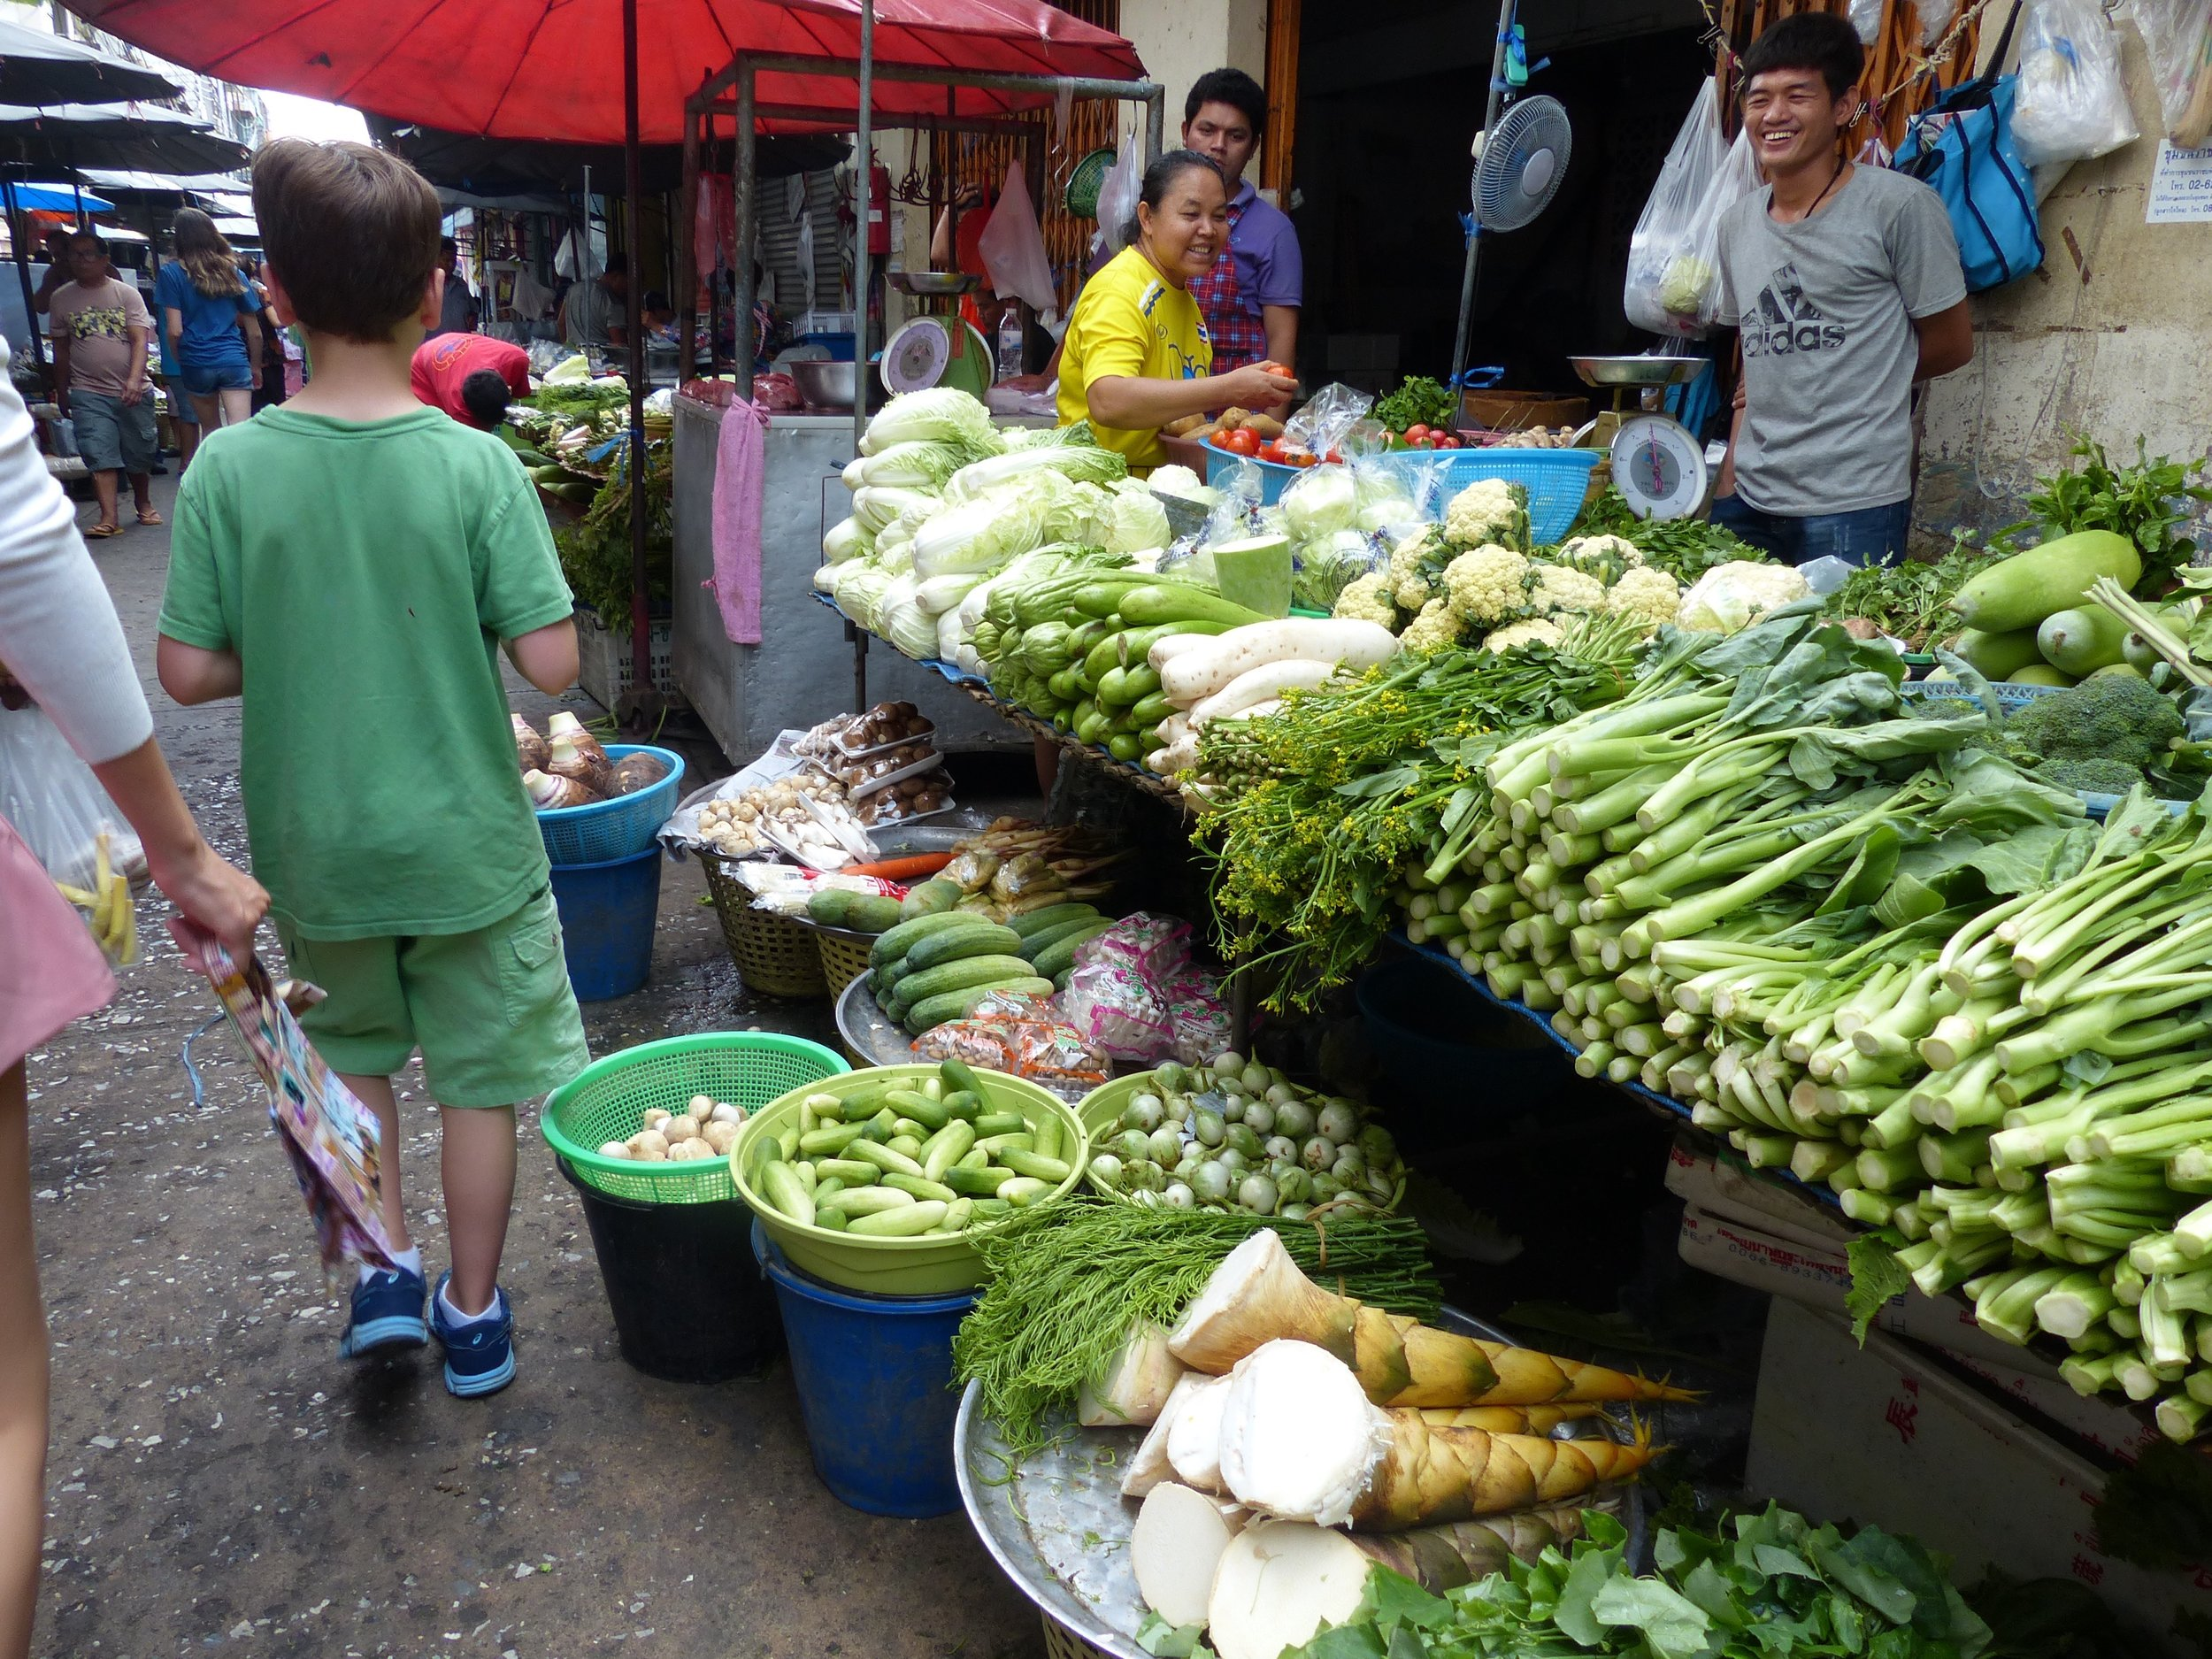 Vendors are more friendly to fruit buyers than distant watchers.